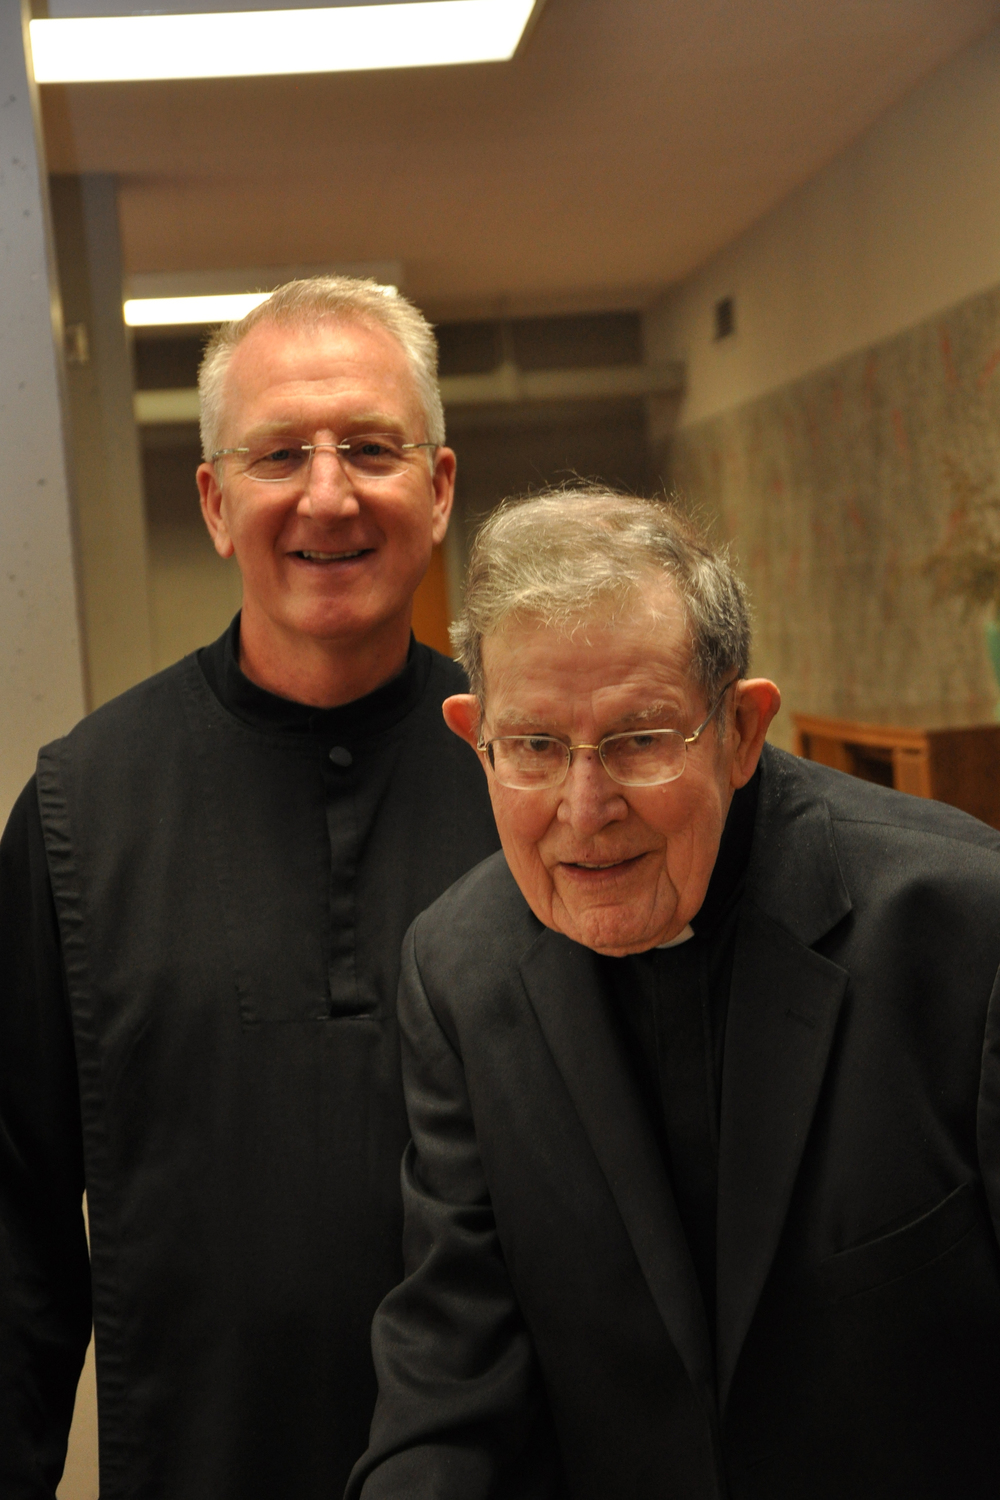 Br. Luke Turner and Fr. Bertrand.